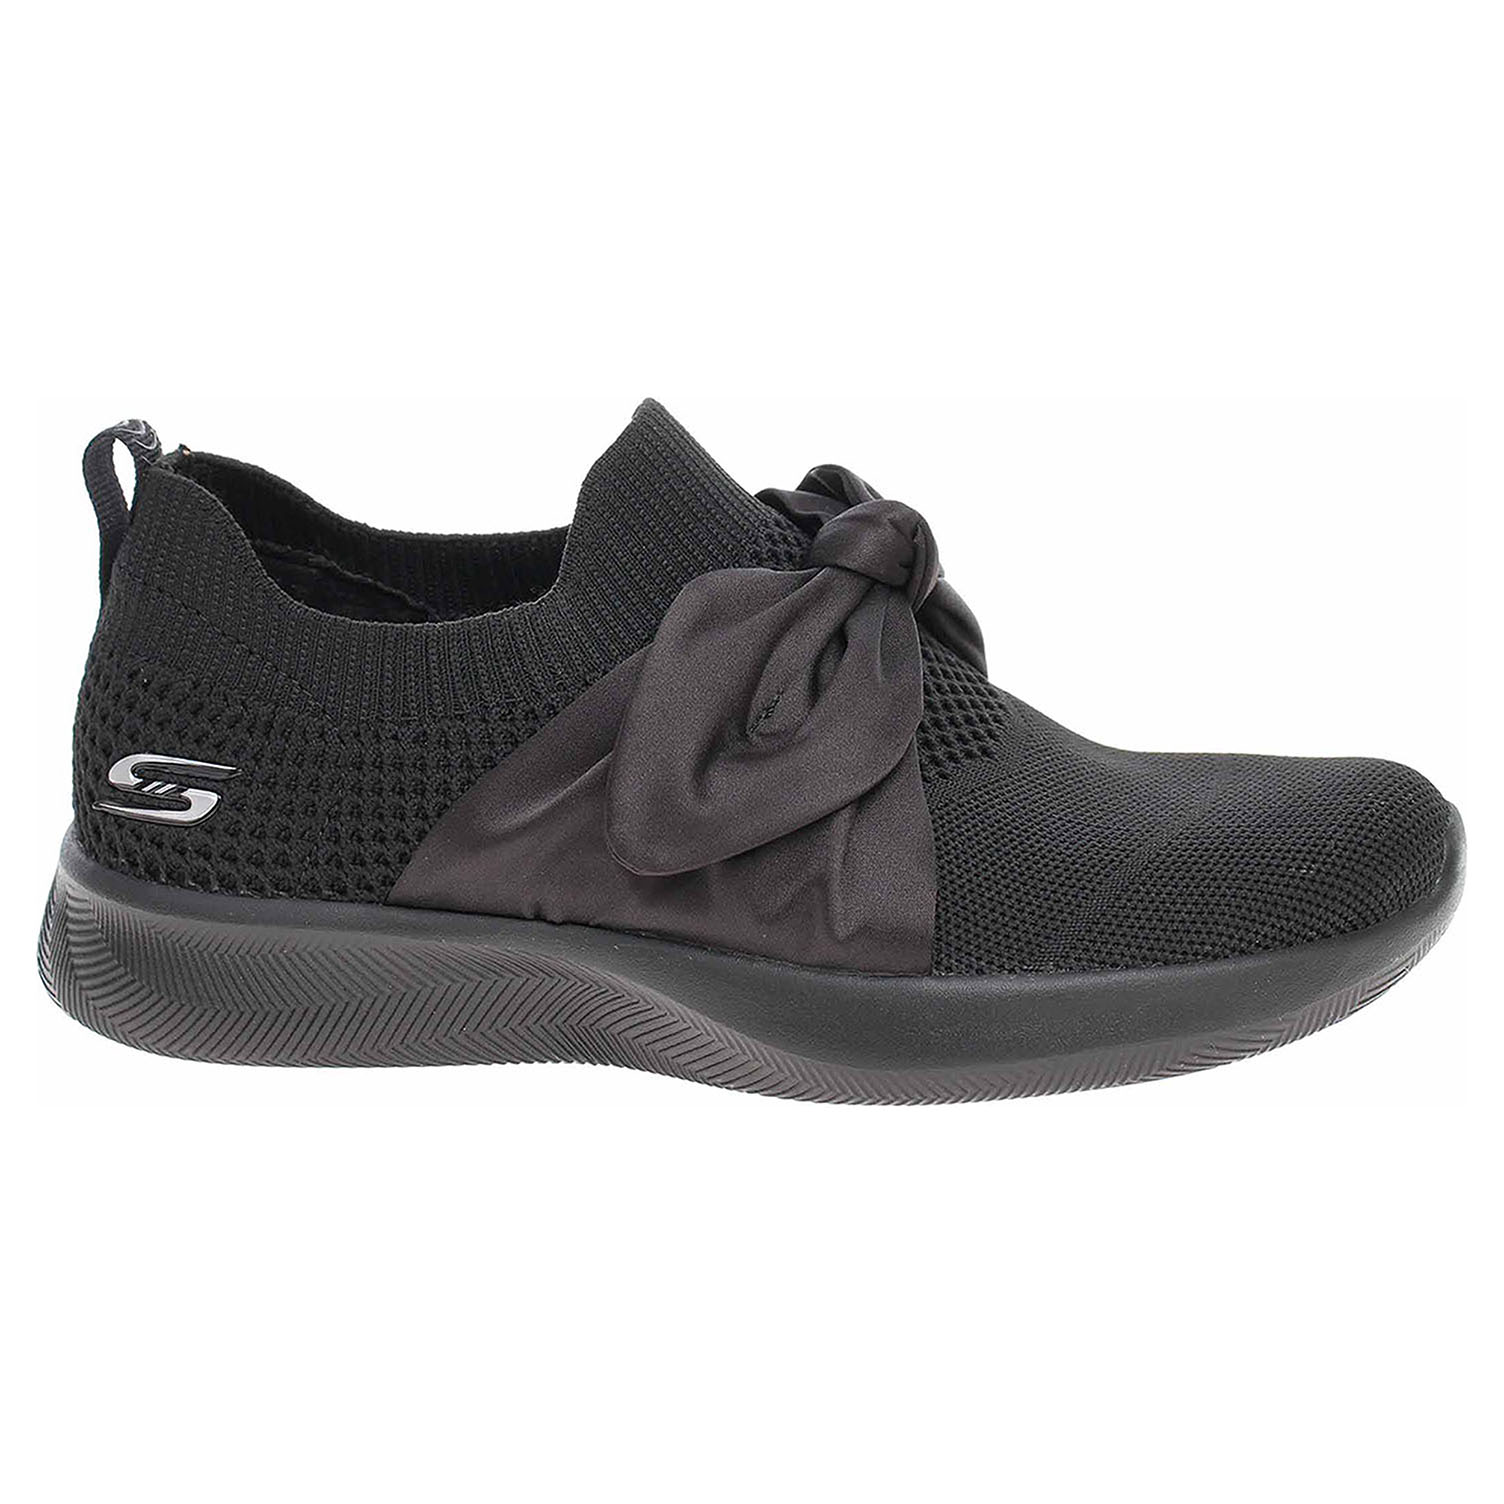 Skechers Bobs Squad 2 - Bow Beauty black 32802 BBK 39